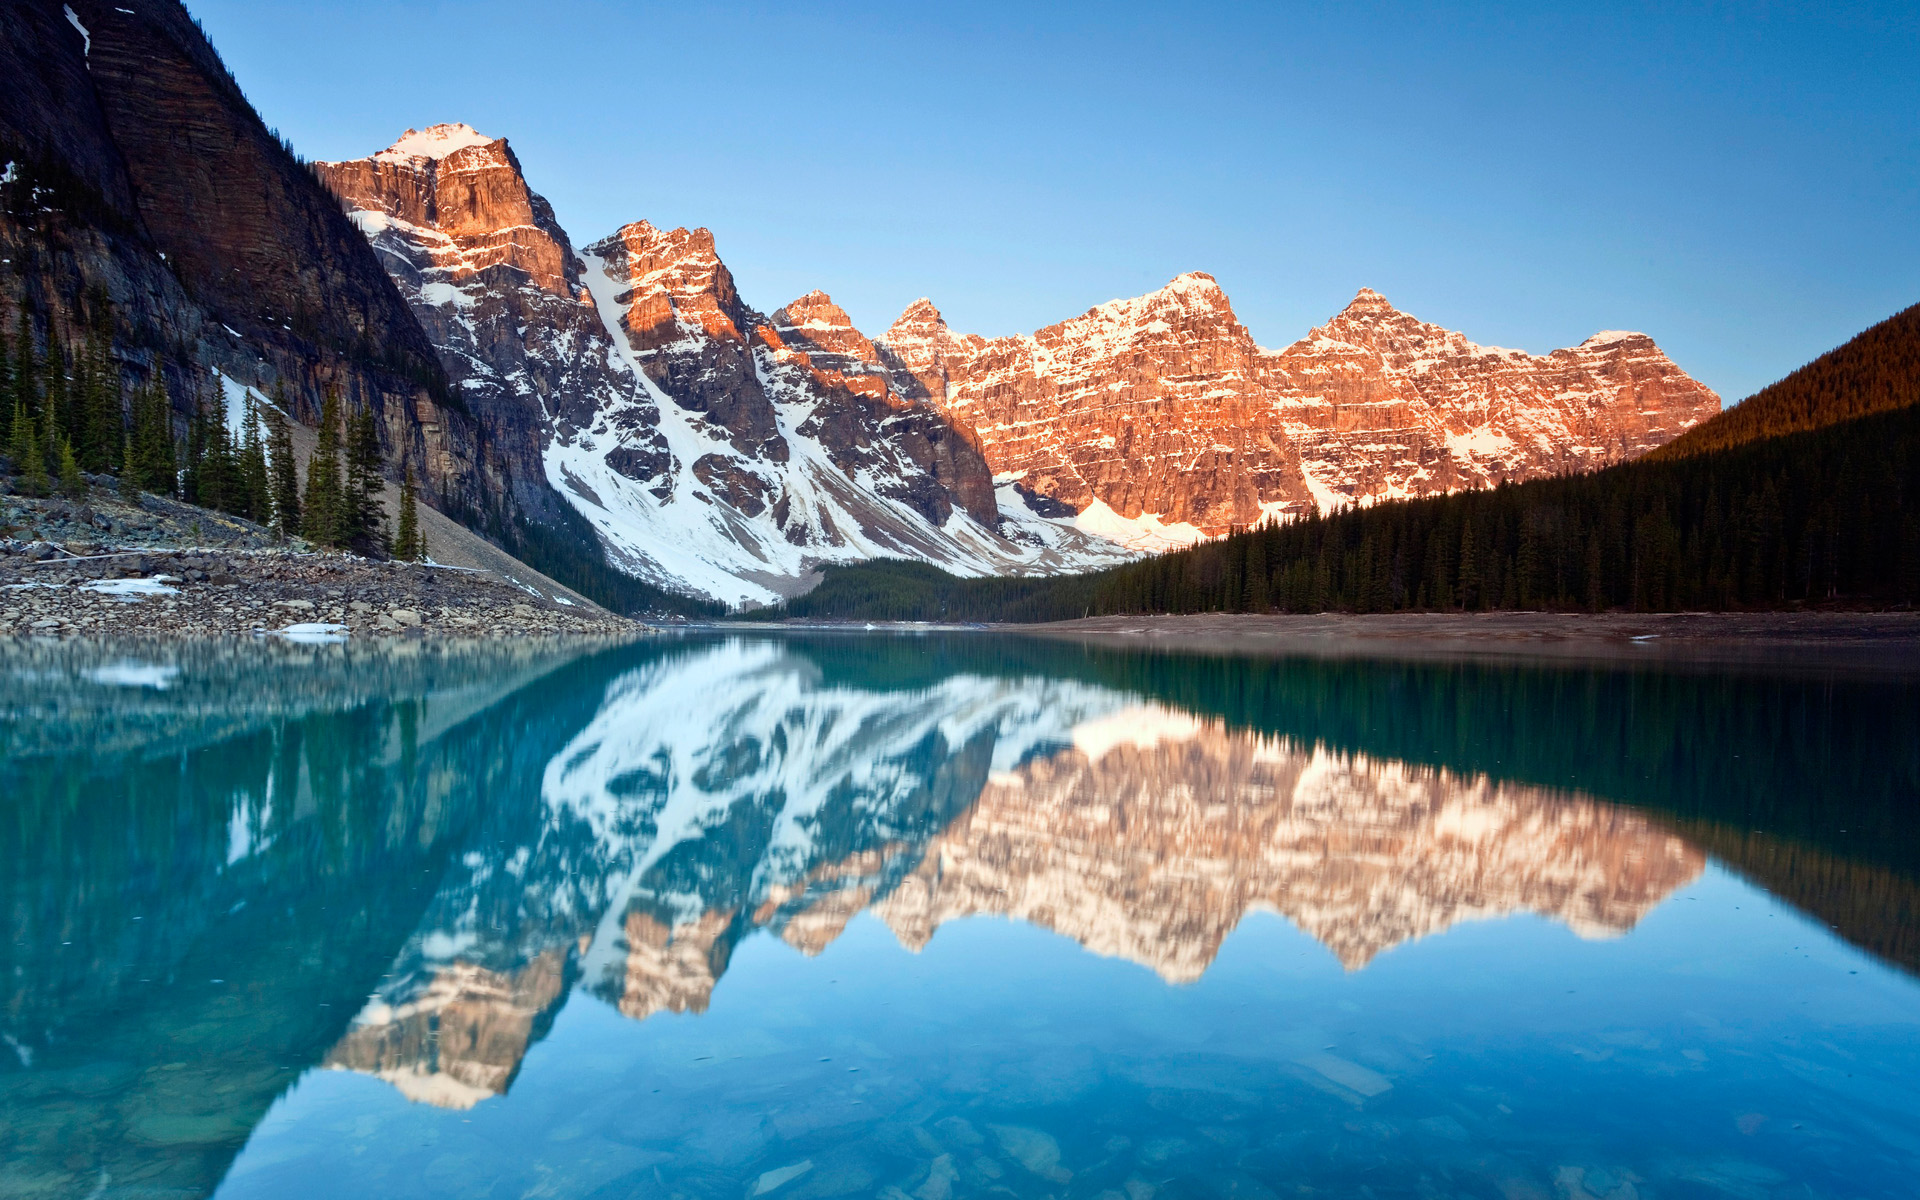 HD Wallpapers Moraine Lake Reflections